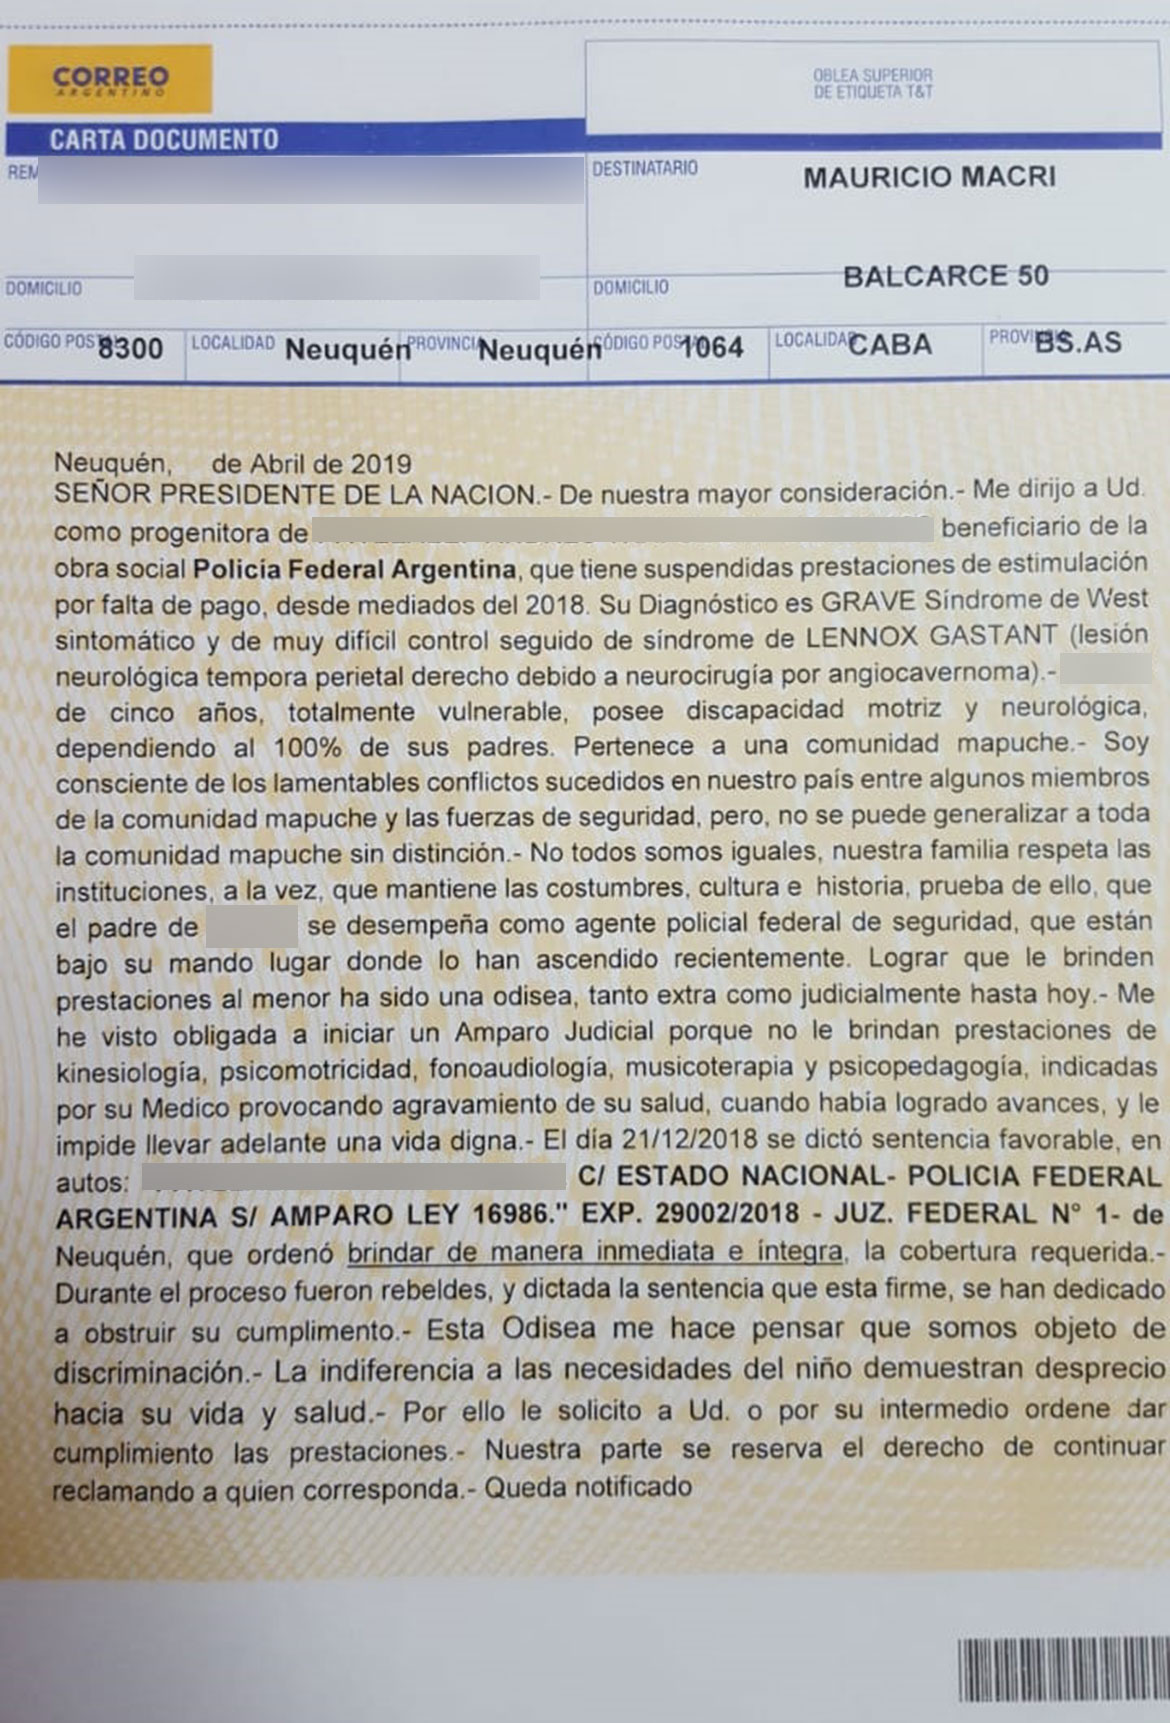 Carta-documento-a-Mauricio-Macri